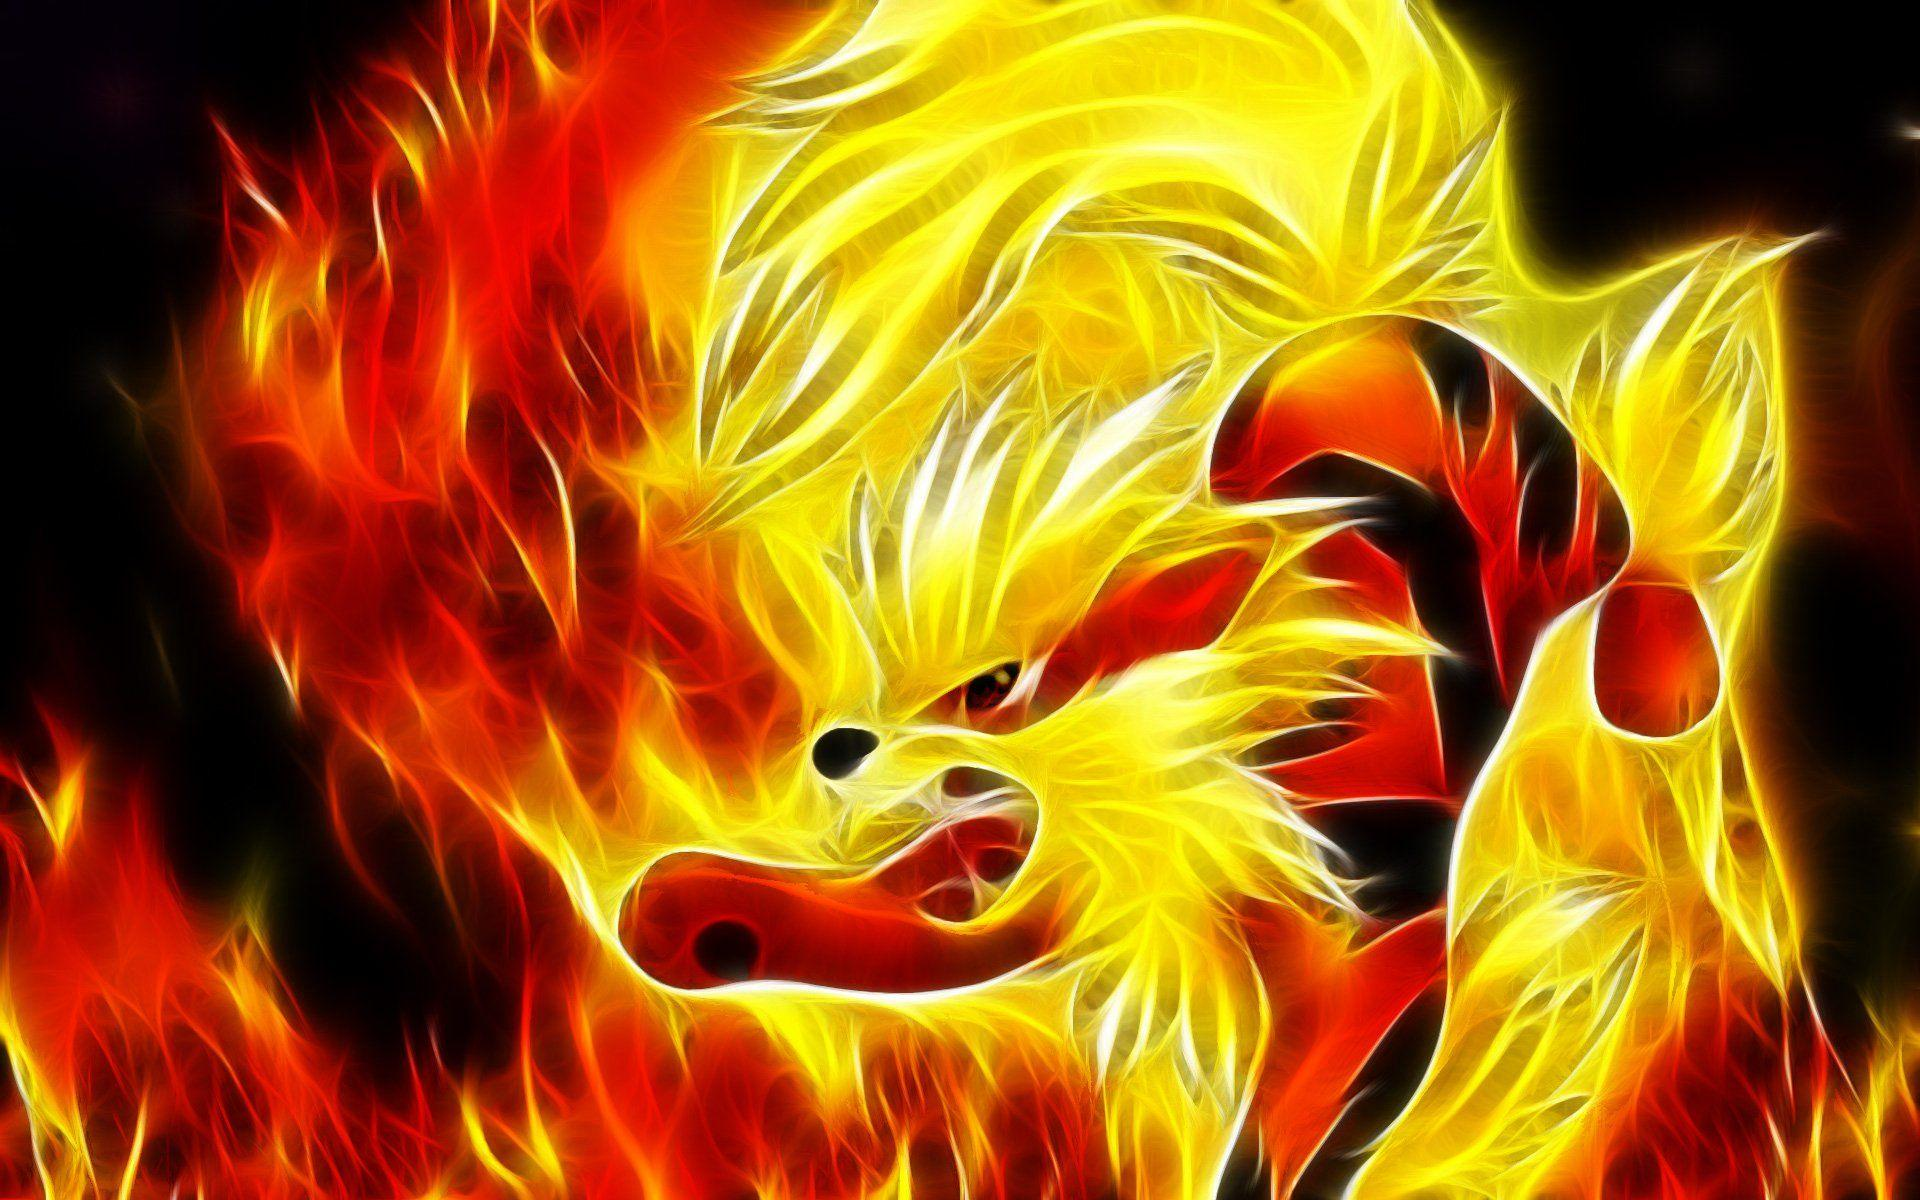 25 Arcanine (Pokémon) HD Wallpapers | Background Images ...